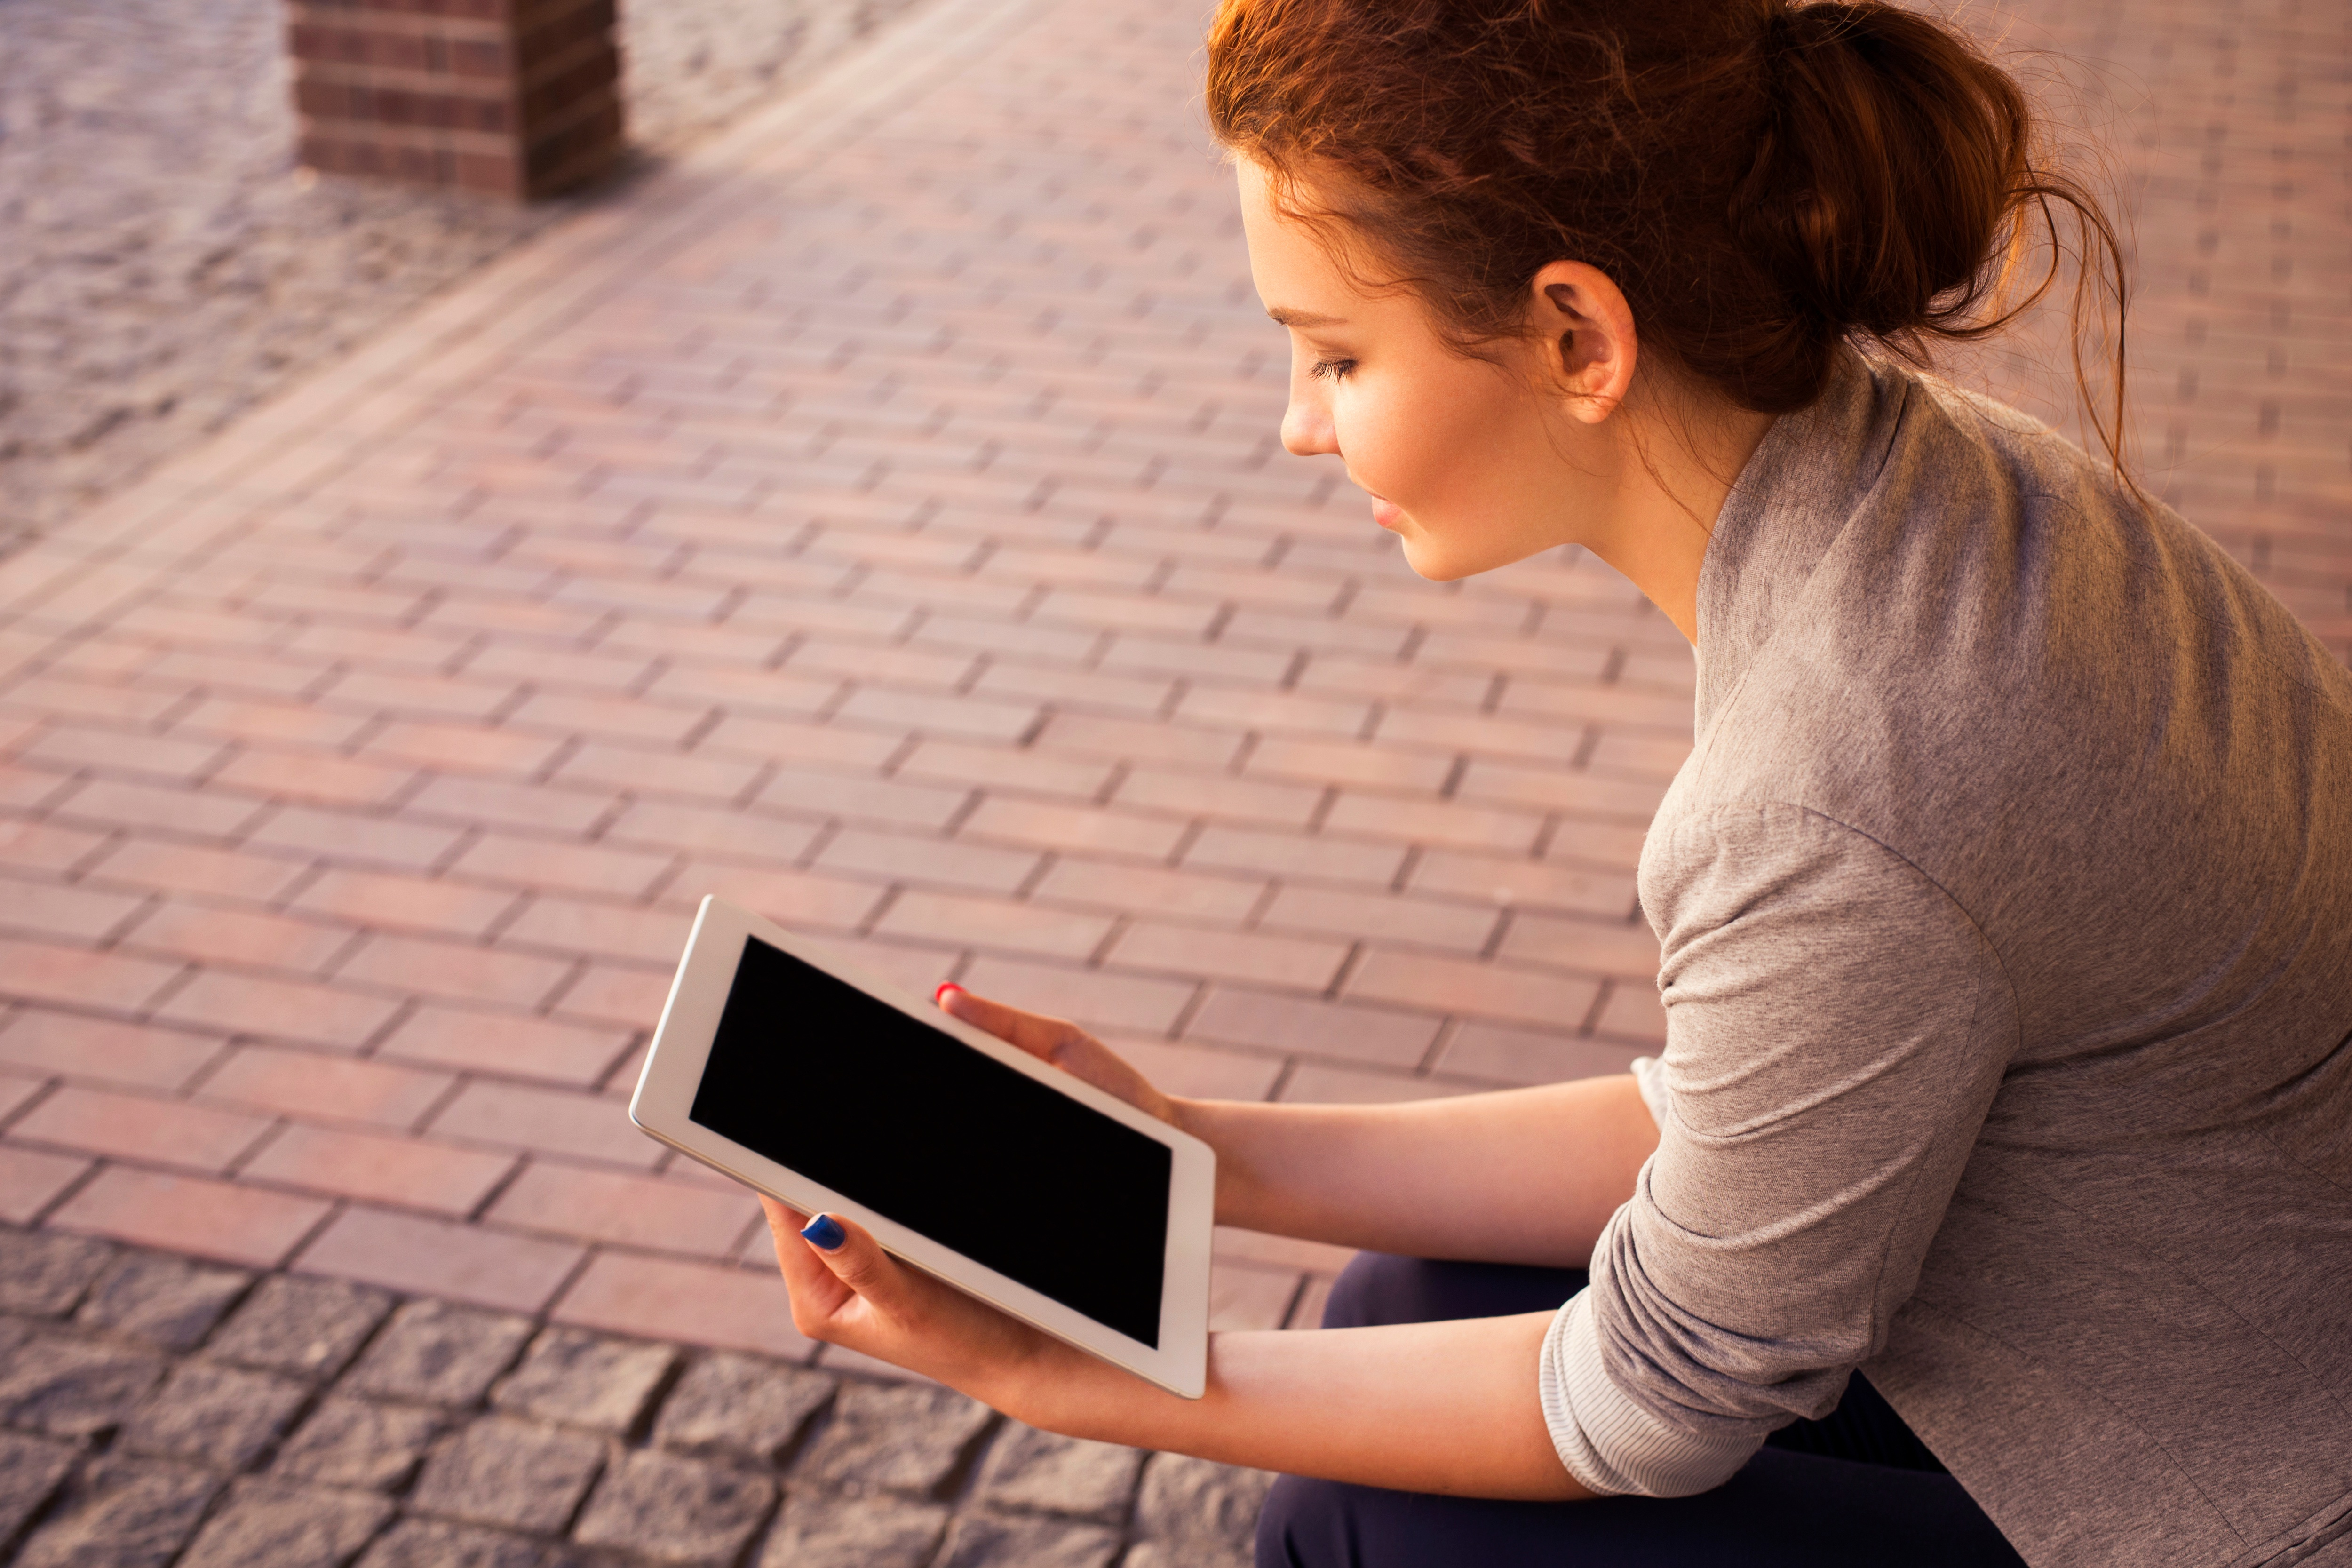 A young lady reads her tablet whilst sat on a brick road